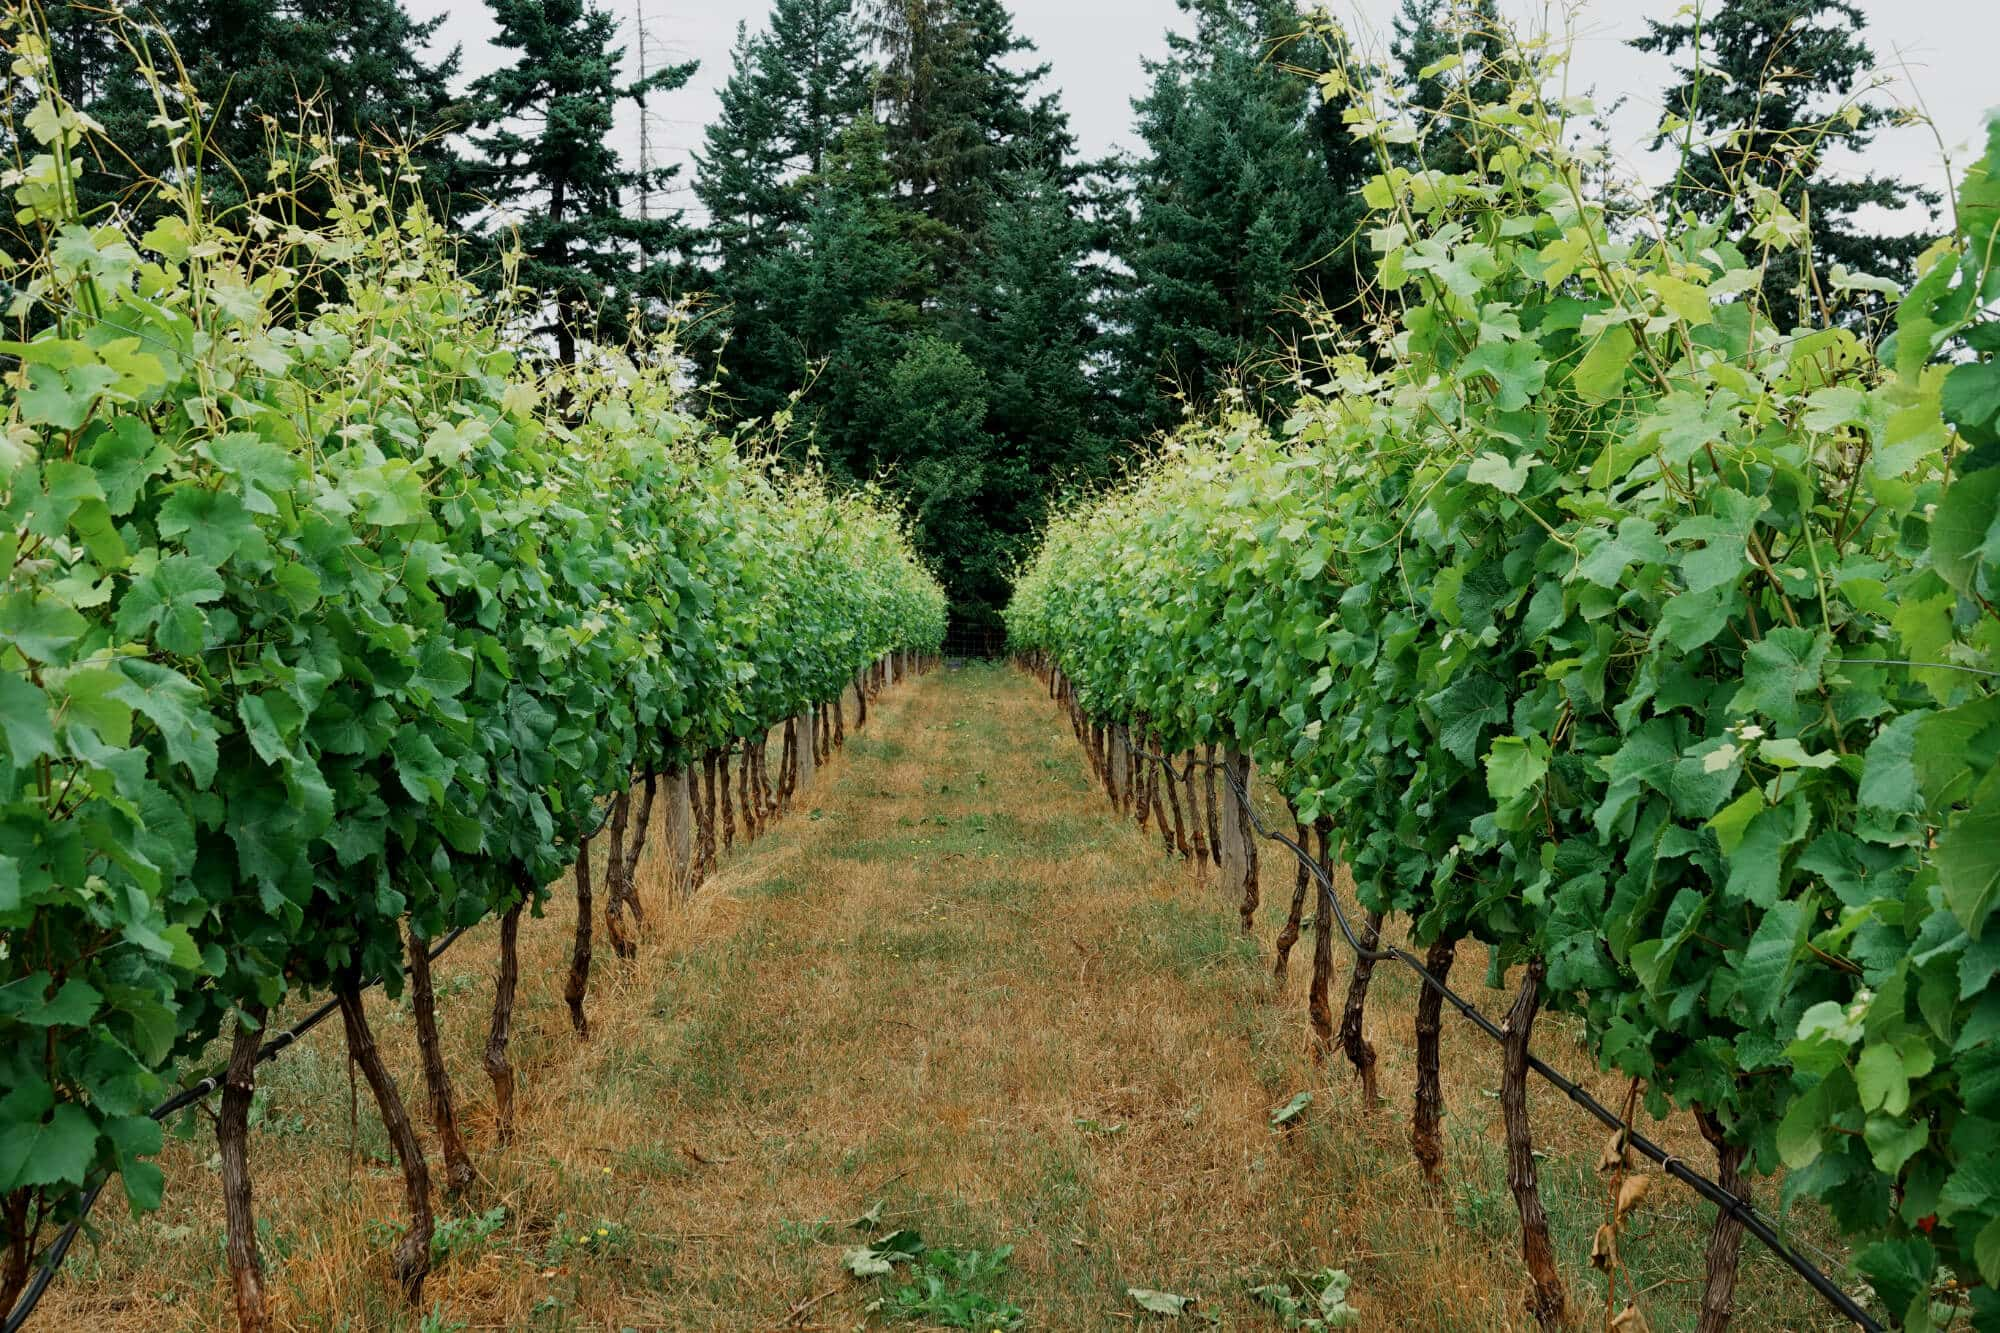 Two rows of Grapes in a Vineyard